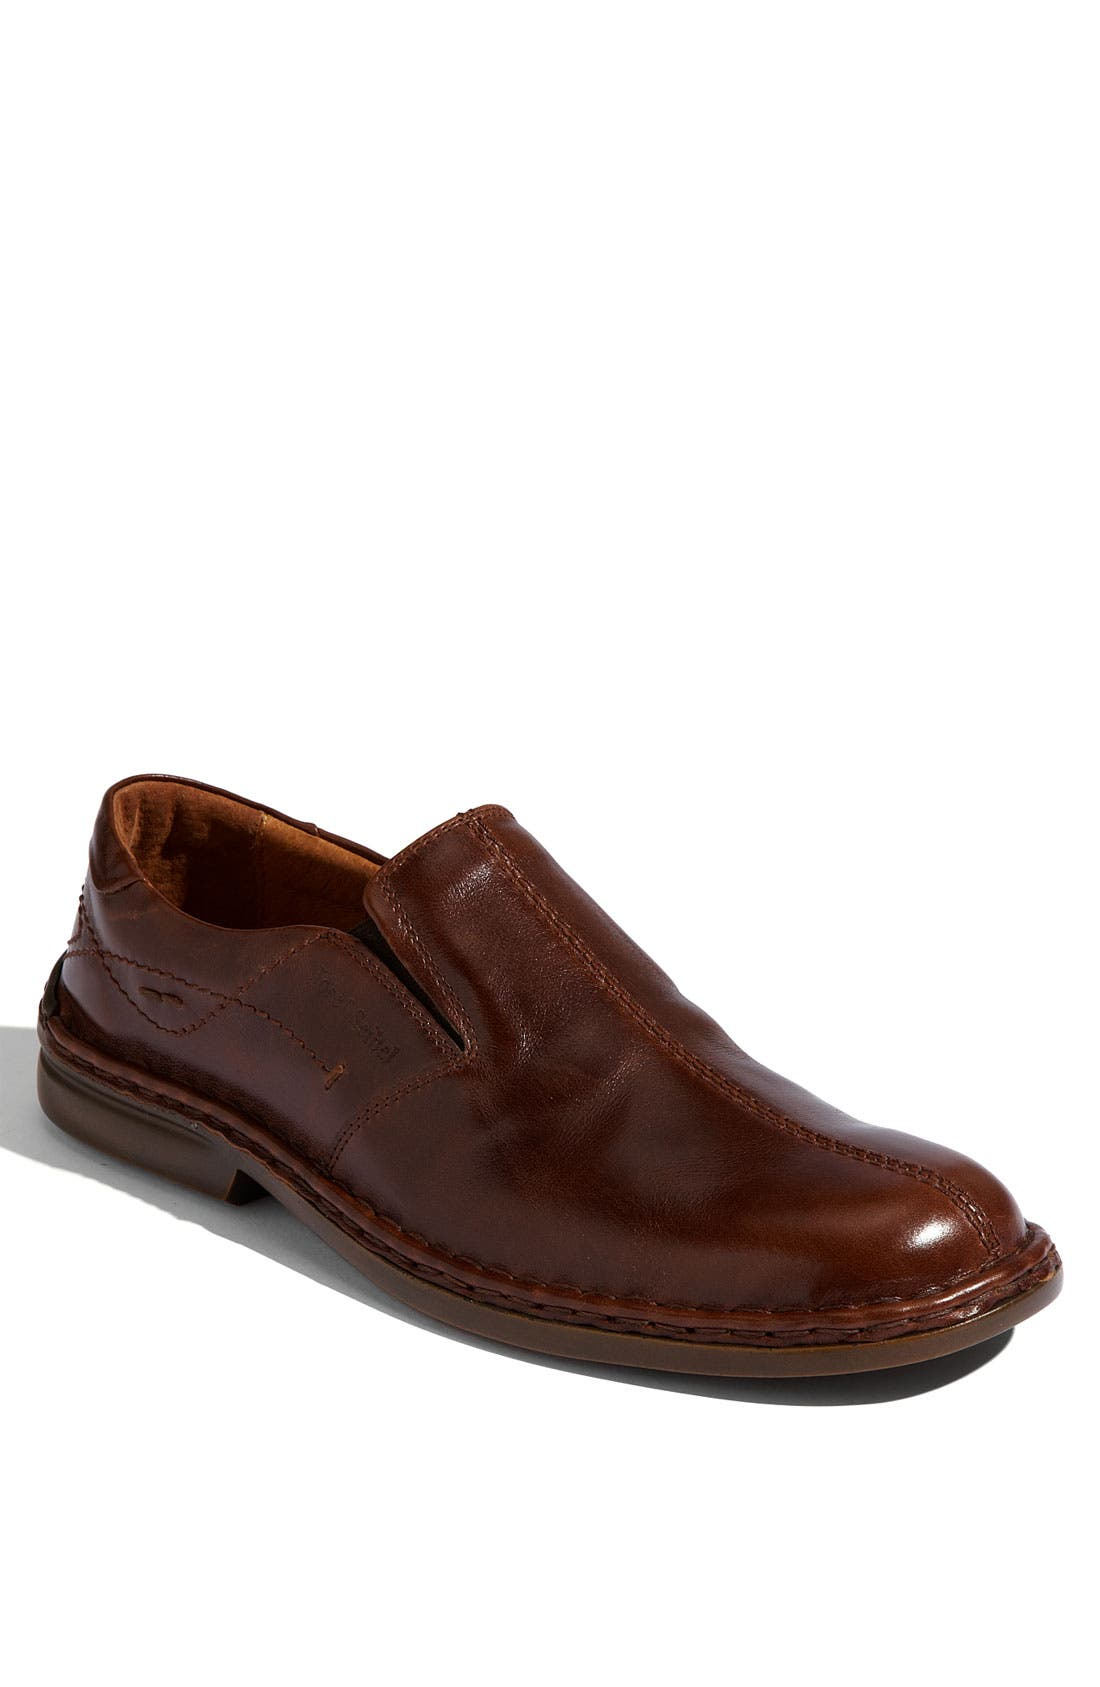 Main Image - Josef Seibel 'Vance' Slip-On